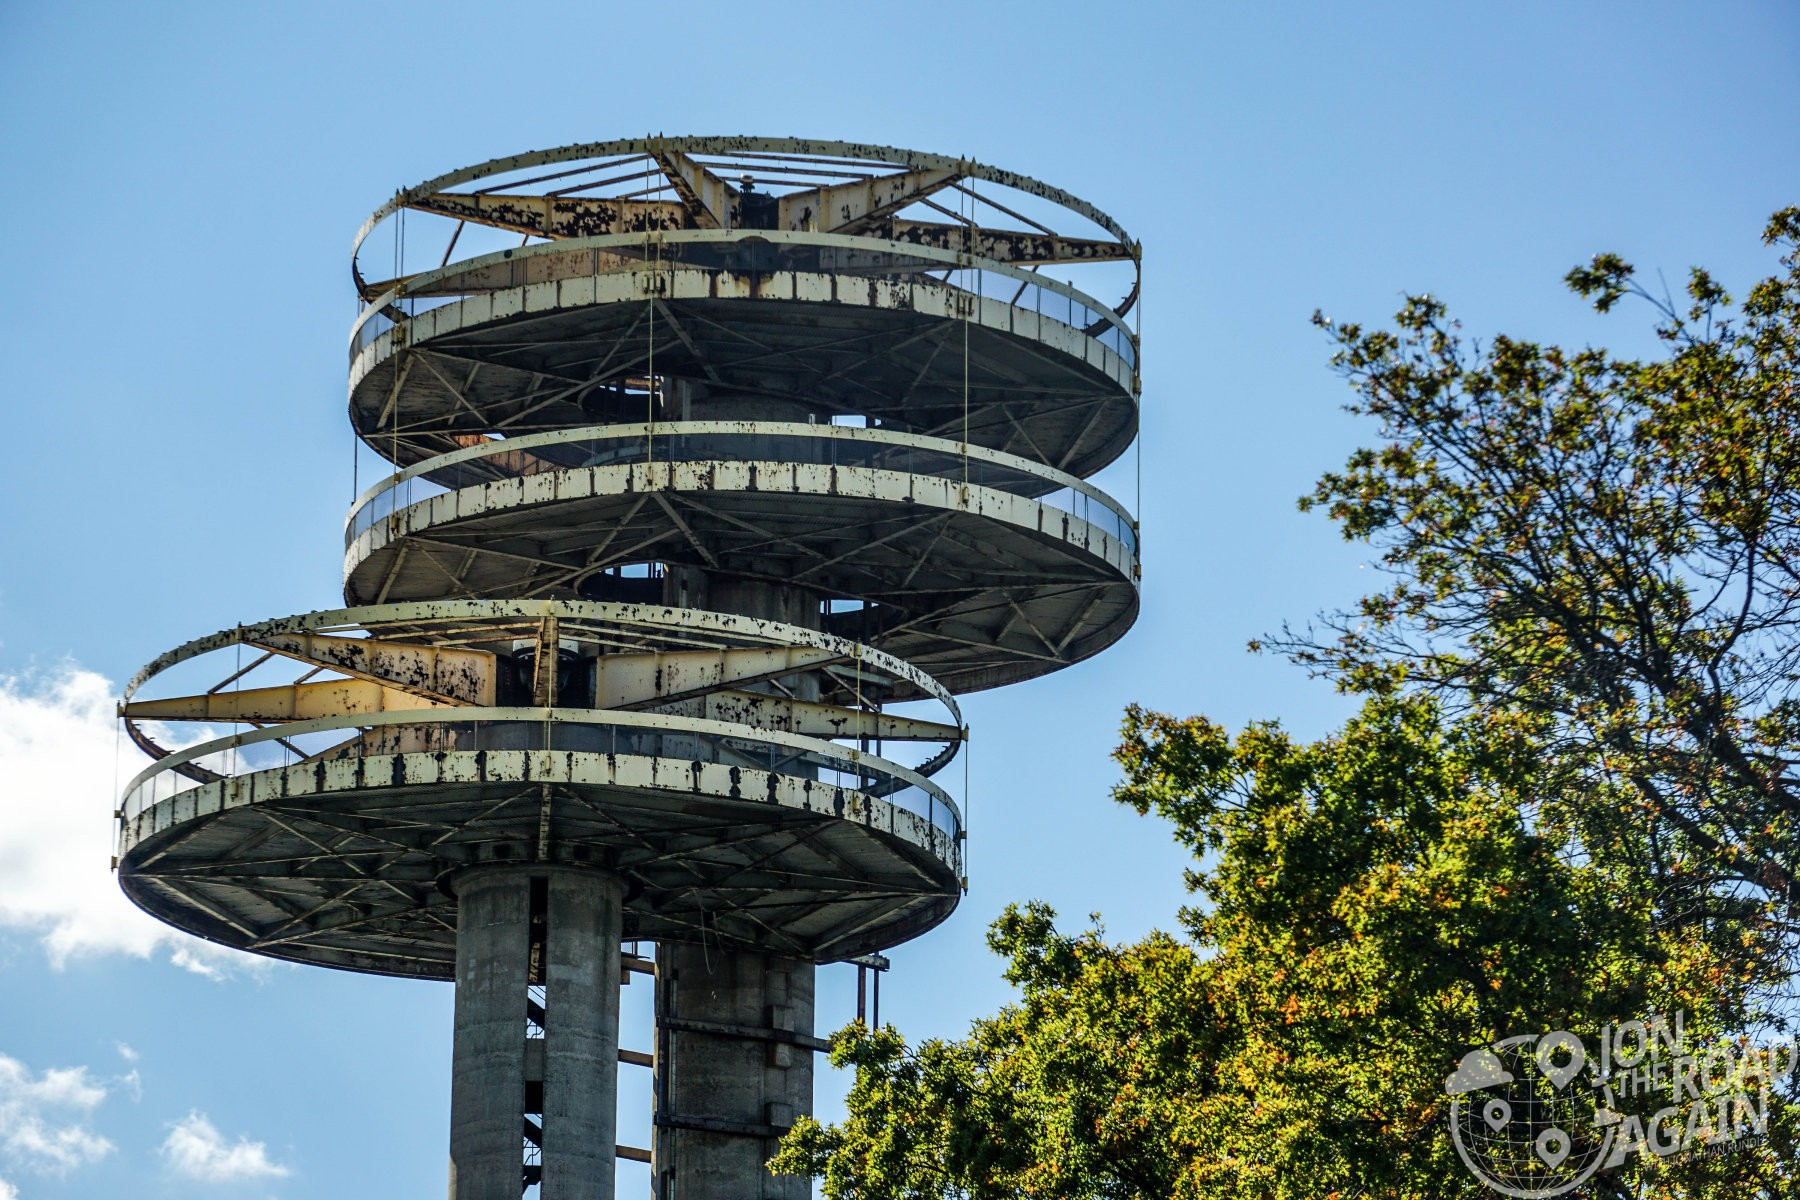 New York Pavilion Observation Towers